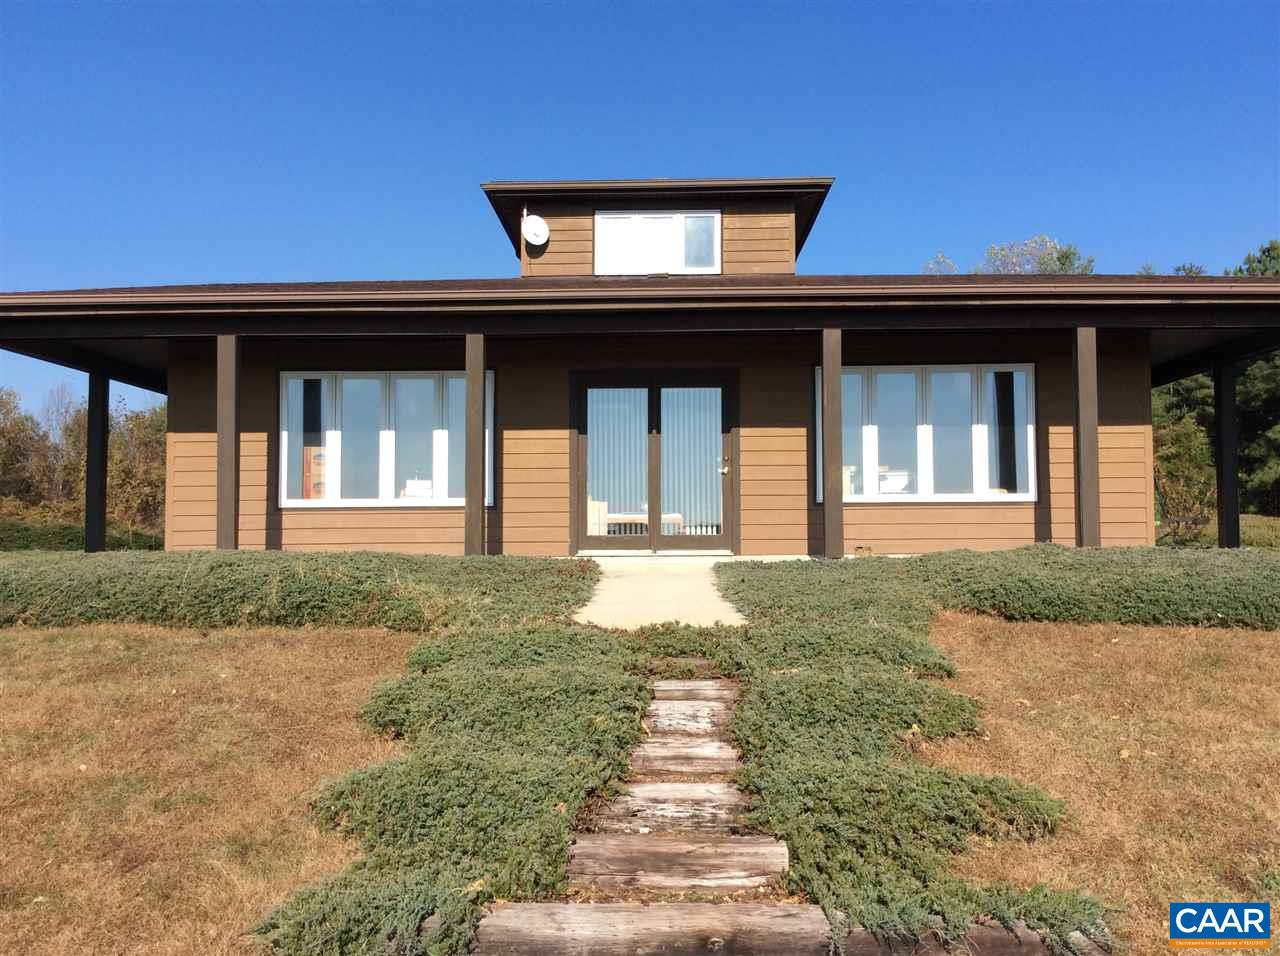 home for sale , MLS #554838, 10599 Norwood Rd